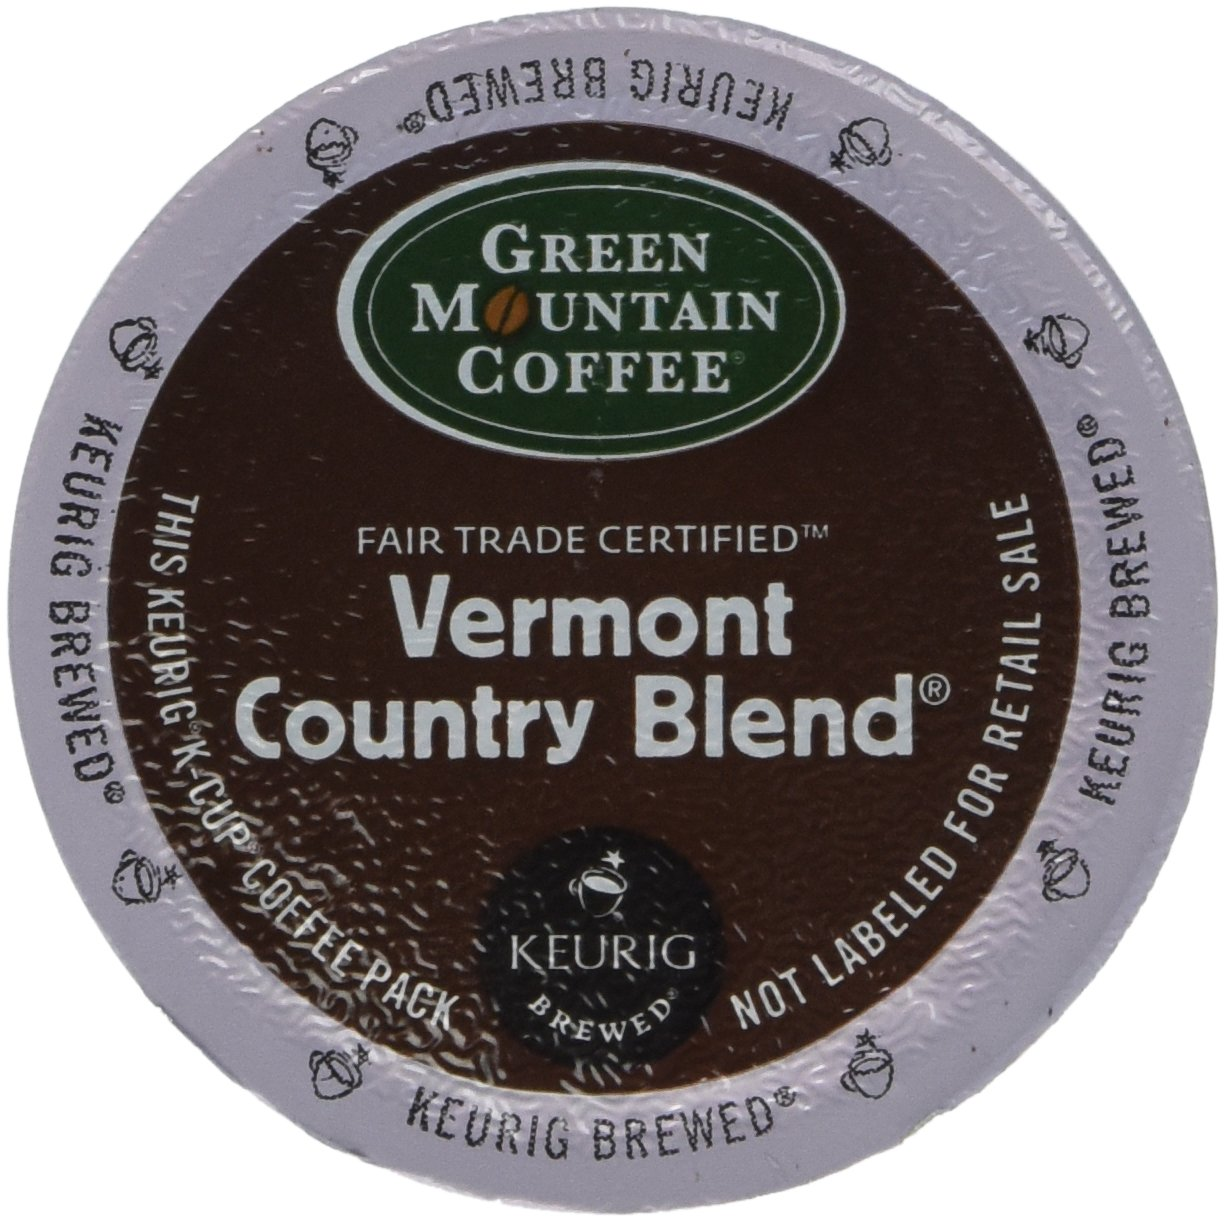 green mountain coffee vermont country blend kcup portion pack for keurig brewers 24count packaging may vary amazoncom grocery u0026 gourmet food - Cheapest K Cups